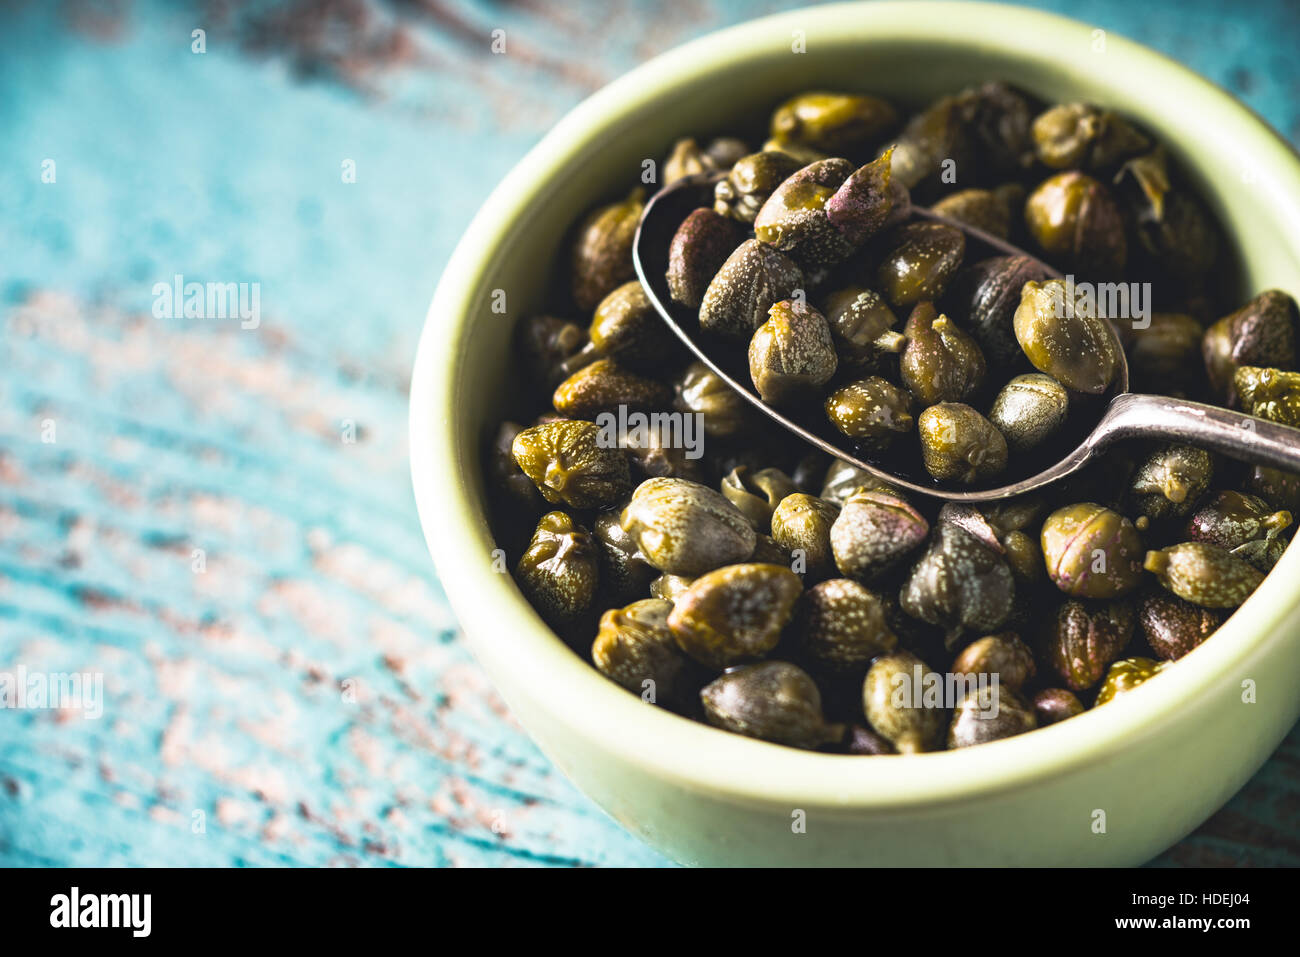 Capers in the bowl on the light blue background - Stock Image